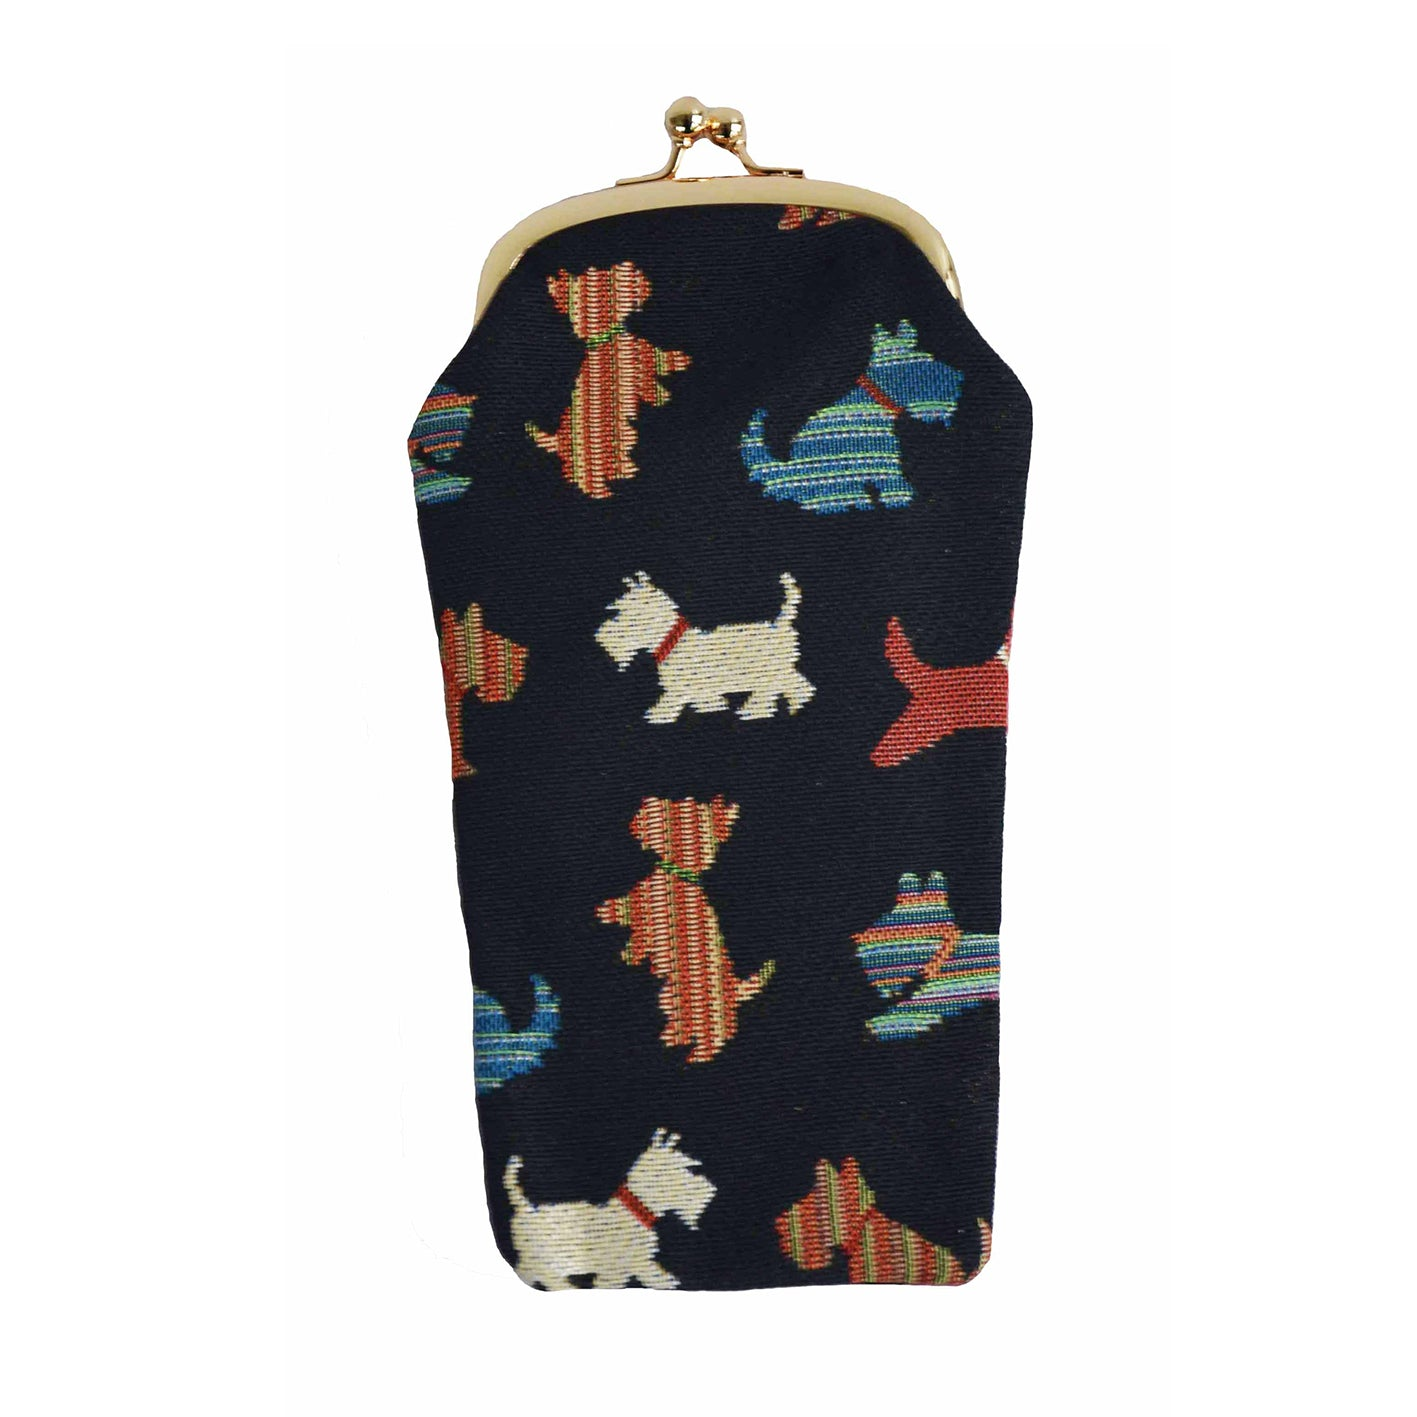 GPCH-SCOT | SCOTTIE DOG GLASSES SUNGLASSES POUCH CASE - www.signareusa.com